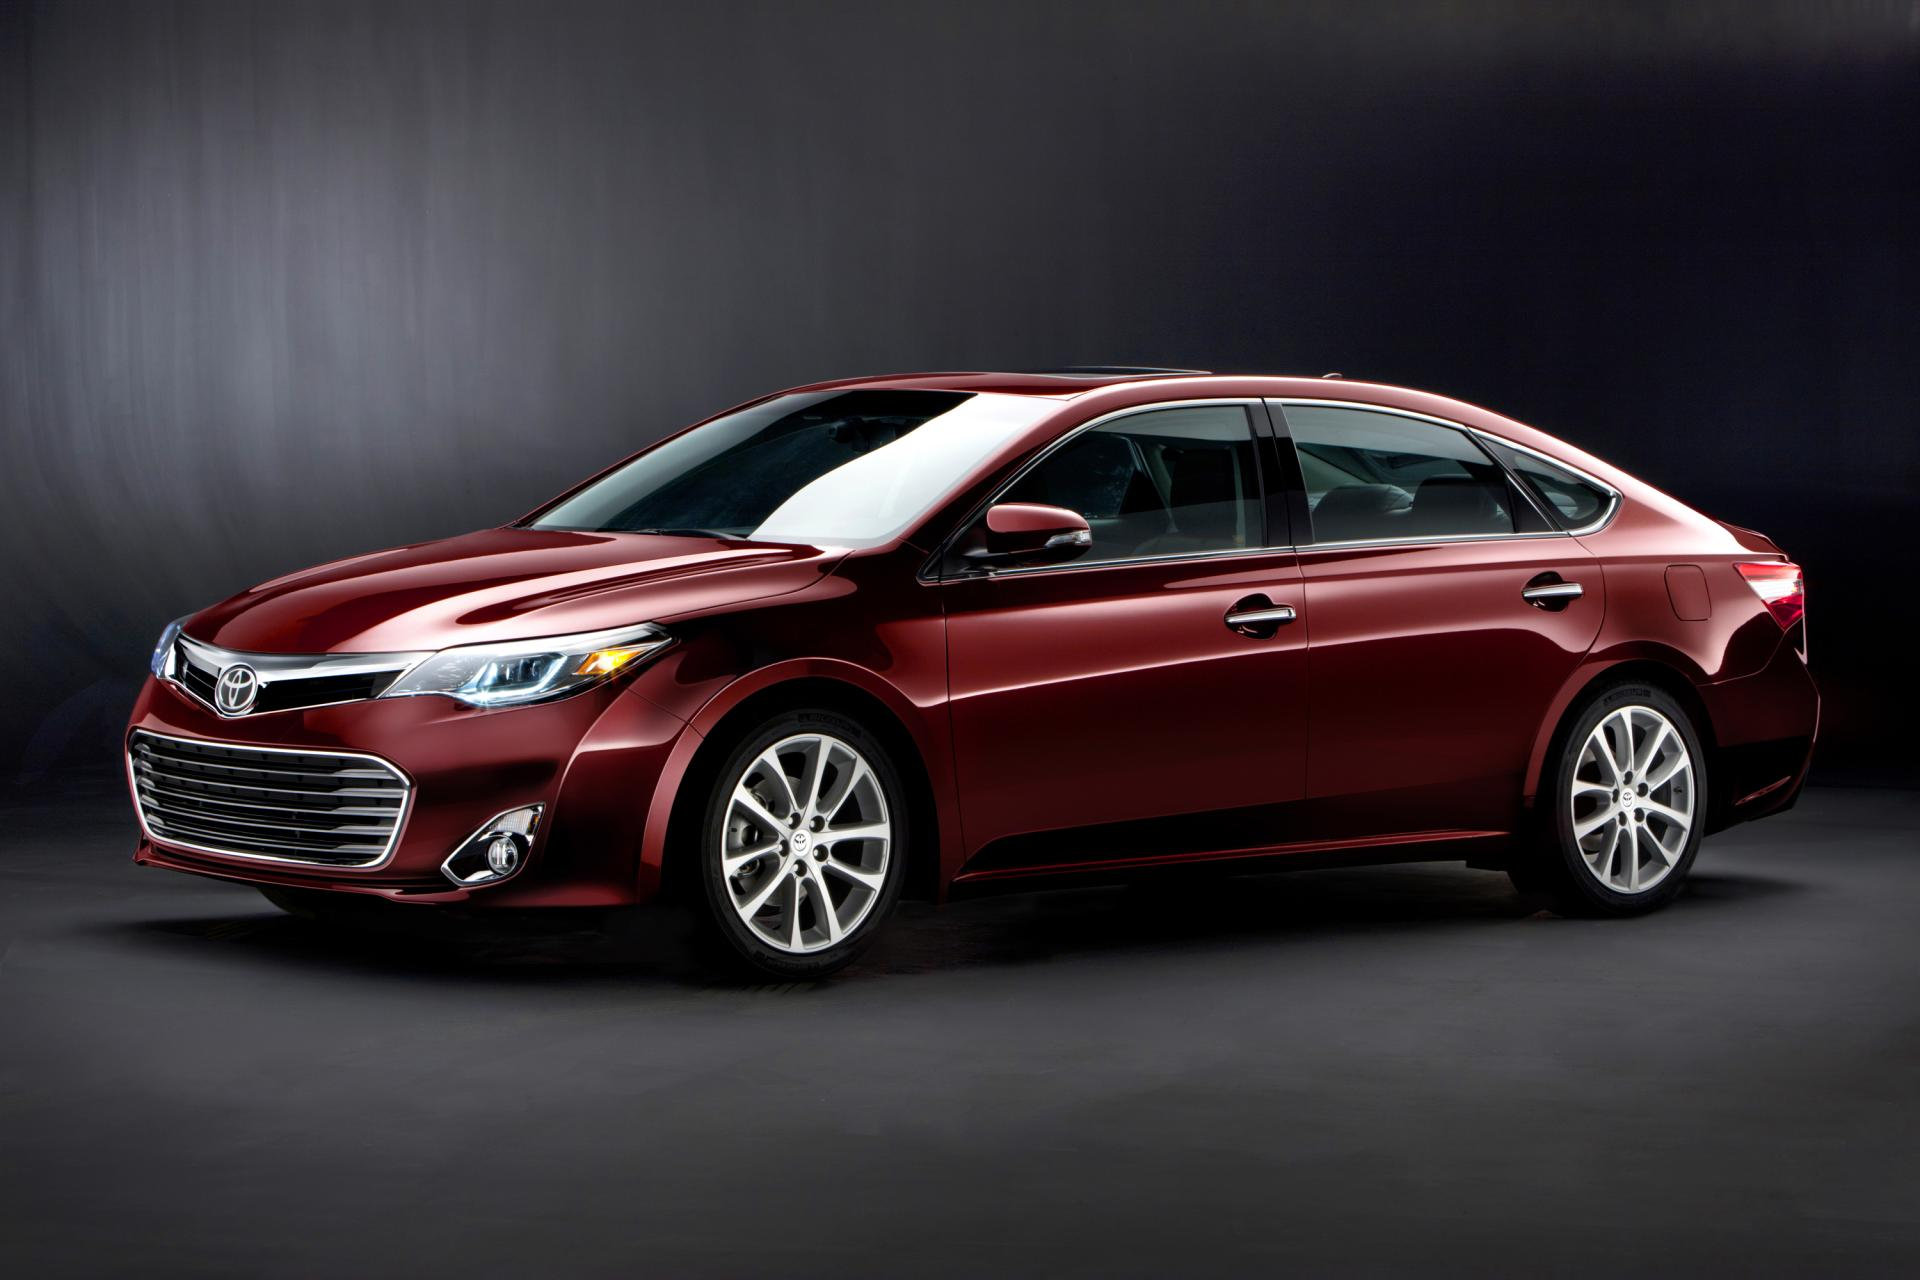 2013 Toyota Avalon Technical Specifications and data Engine